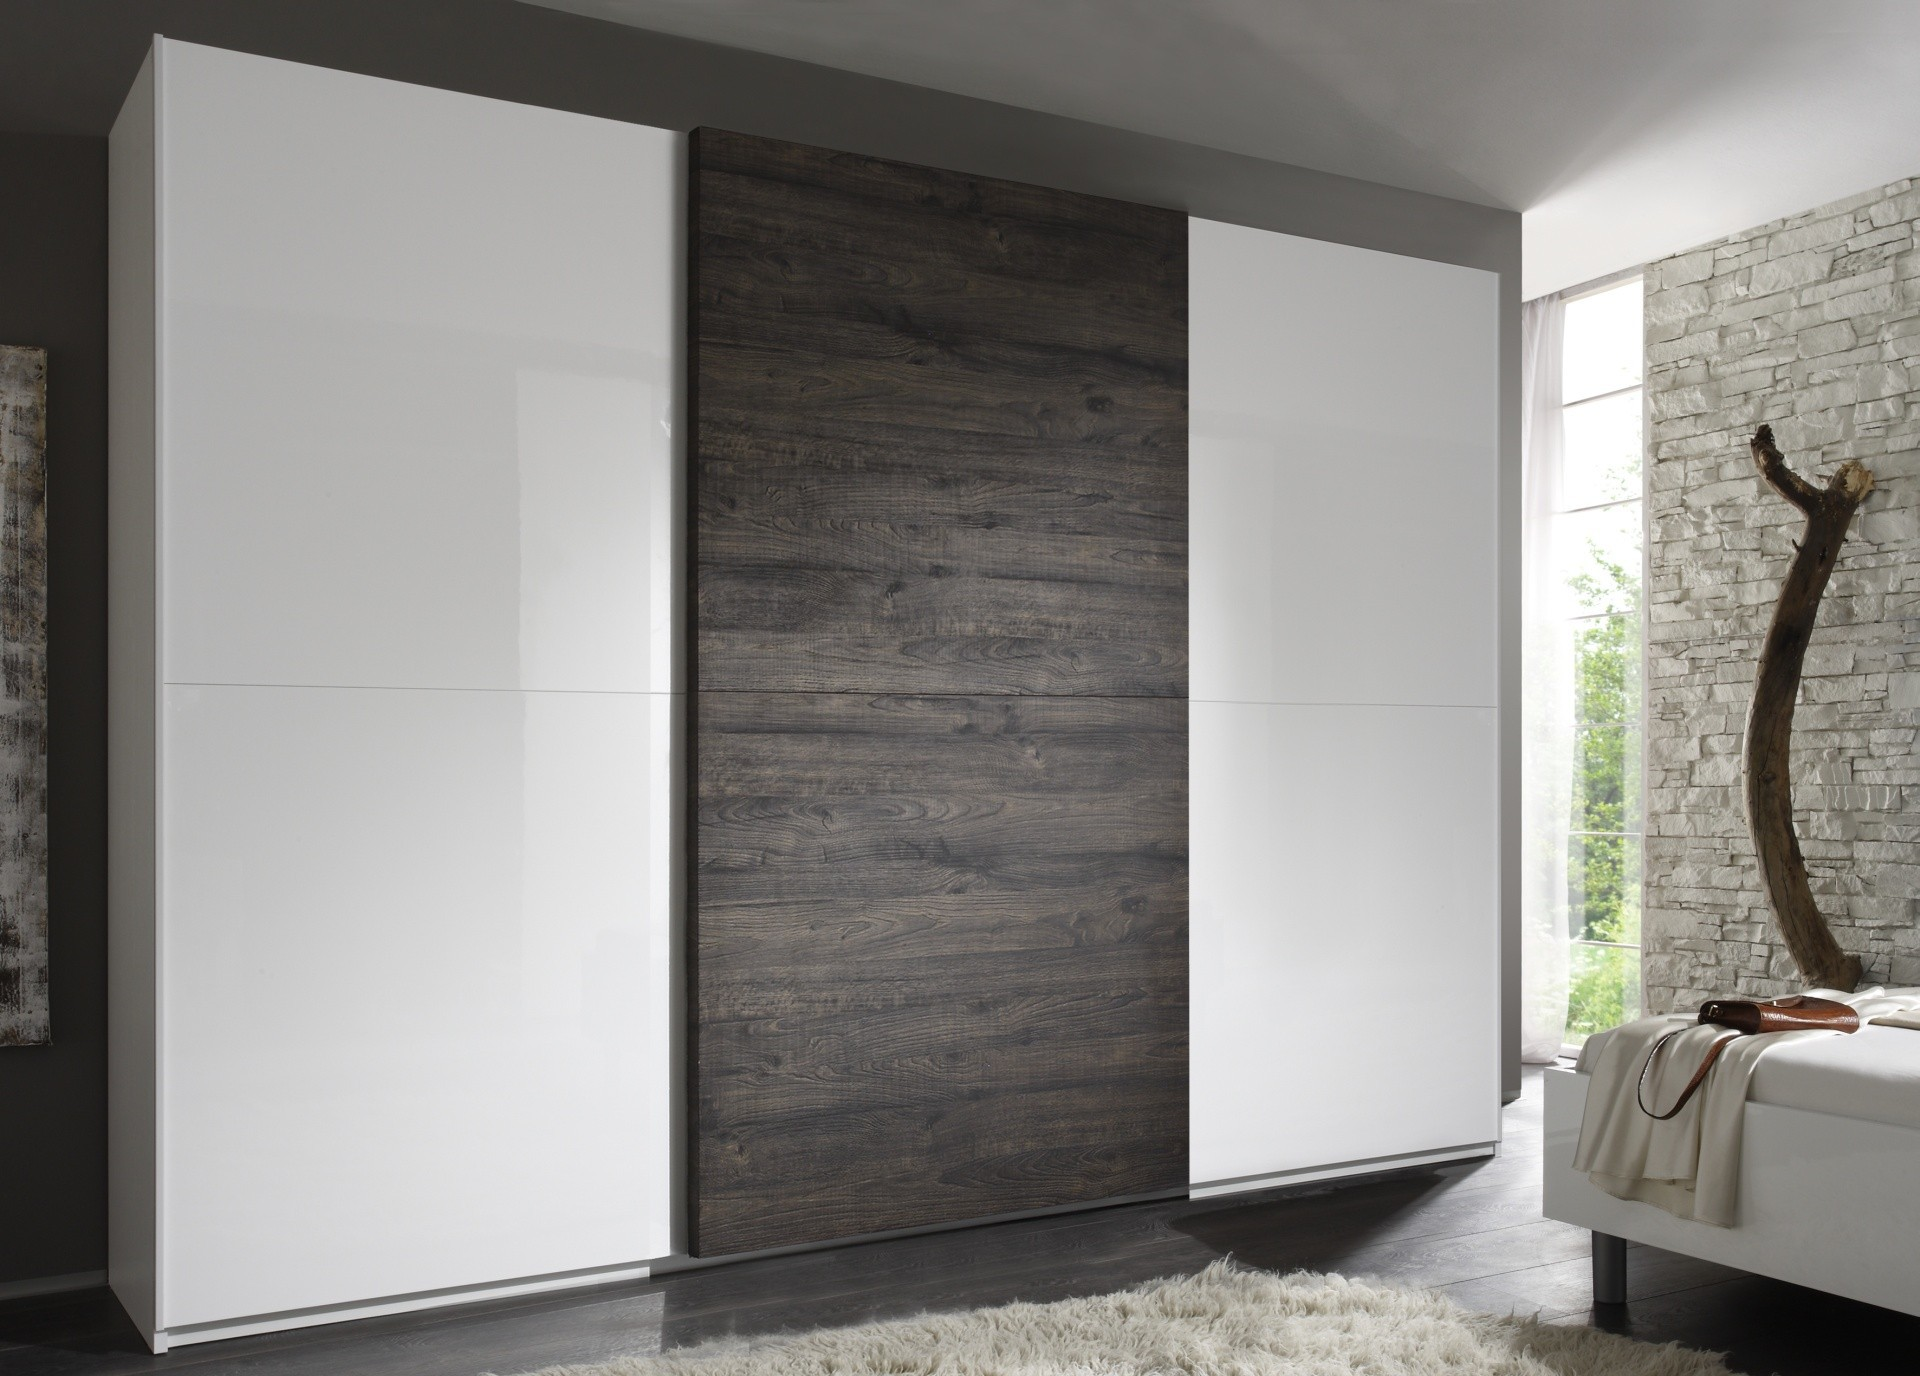 superbe armoire coulissante diff rentes dimensions prix exeptionnel. Black Bedroom Furniture Sets. Home Design Ideas